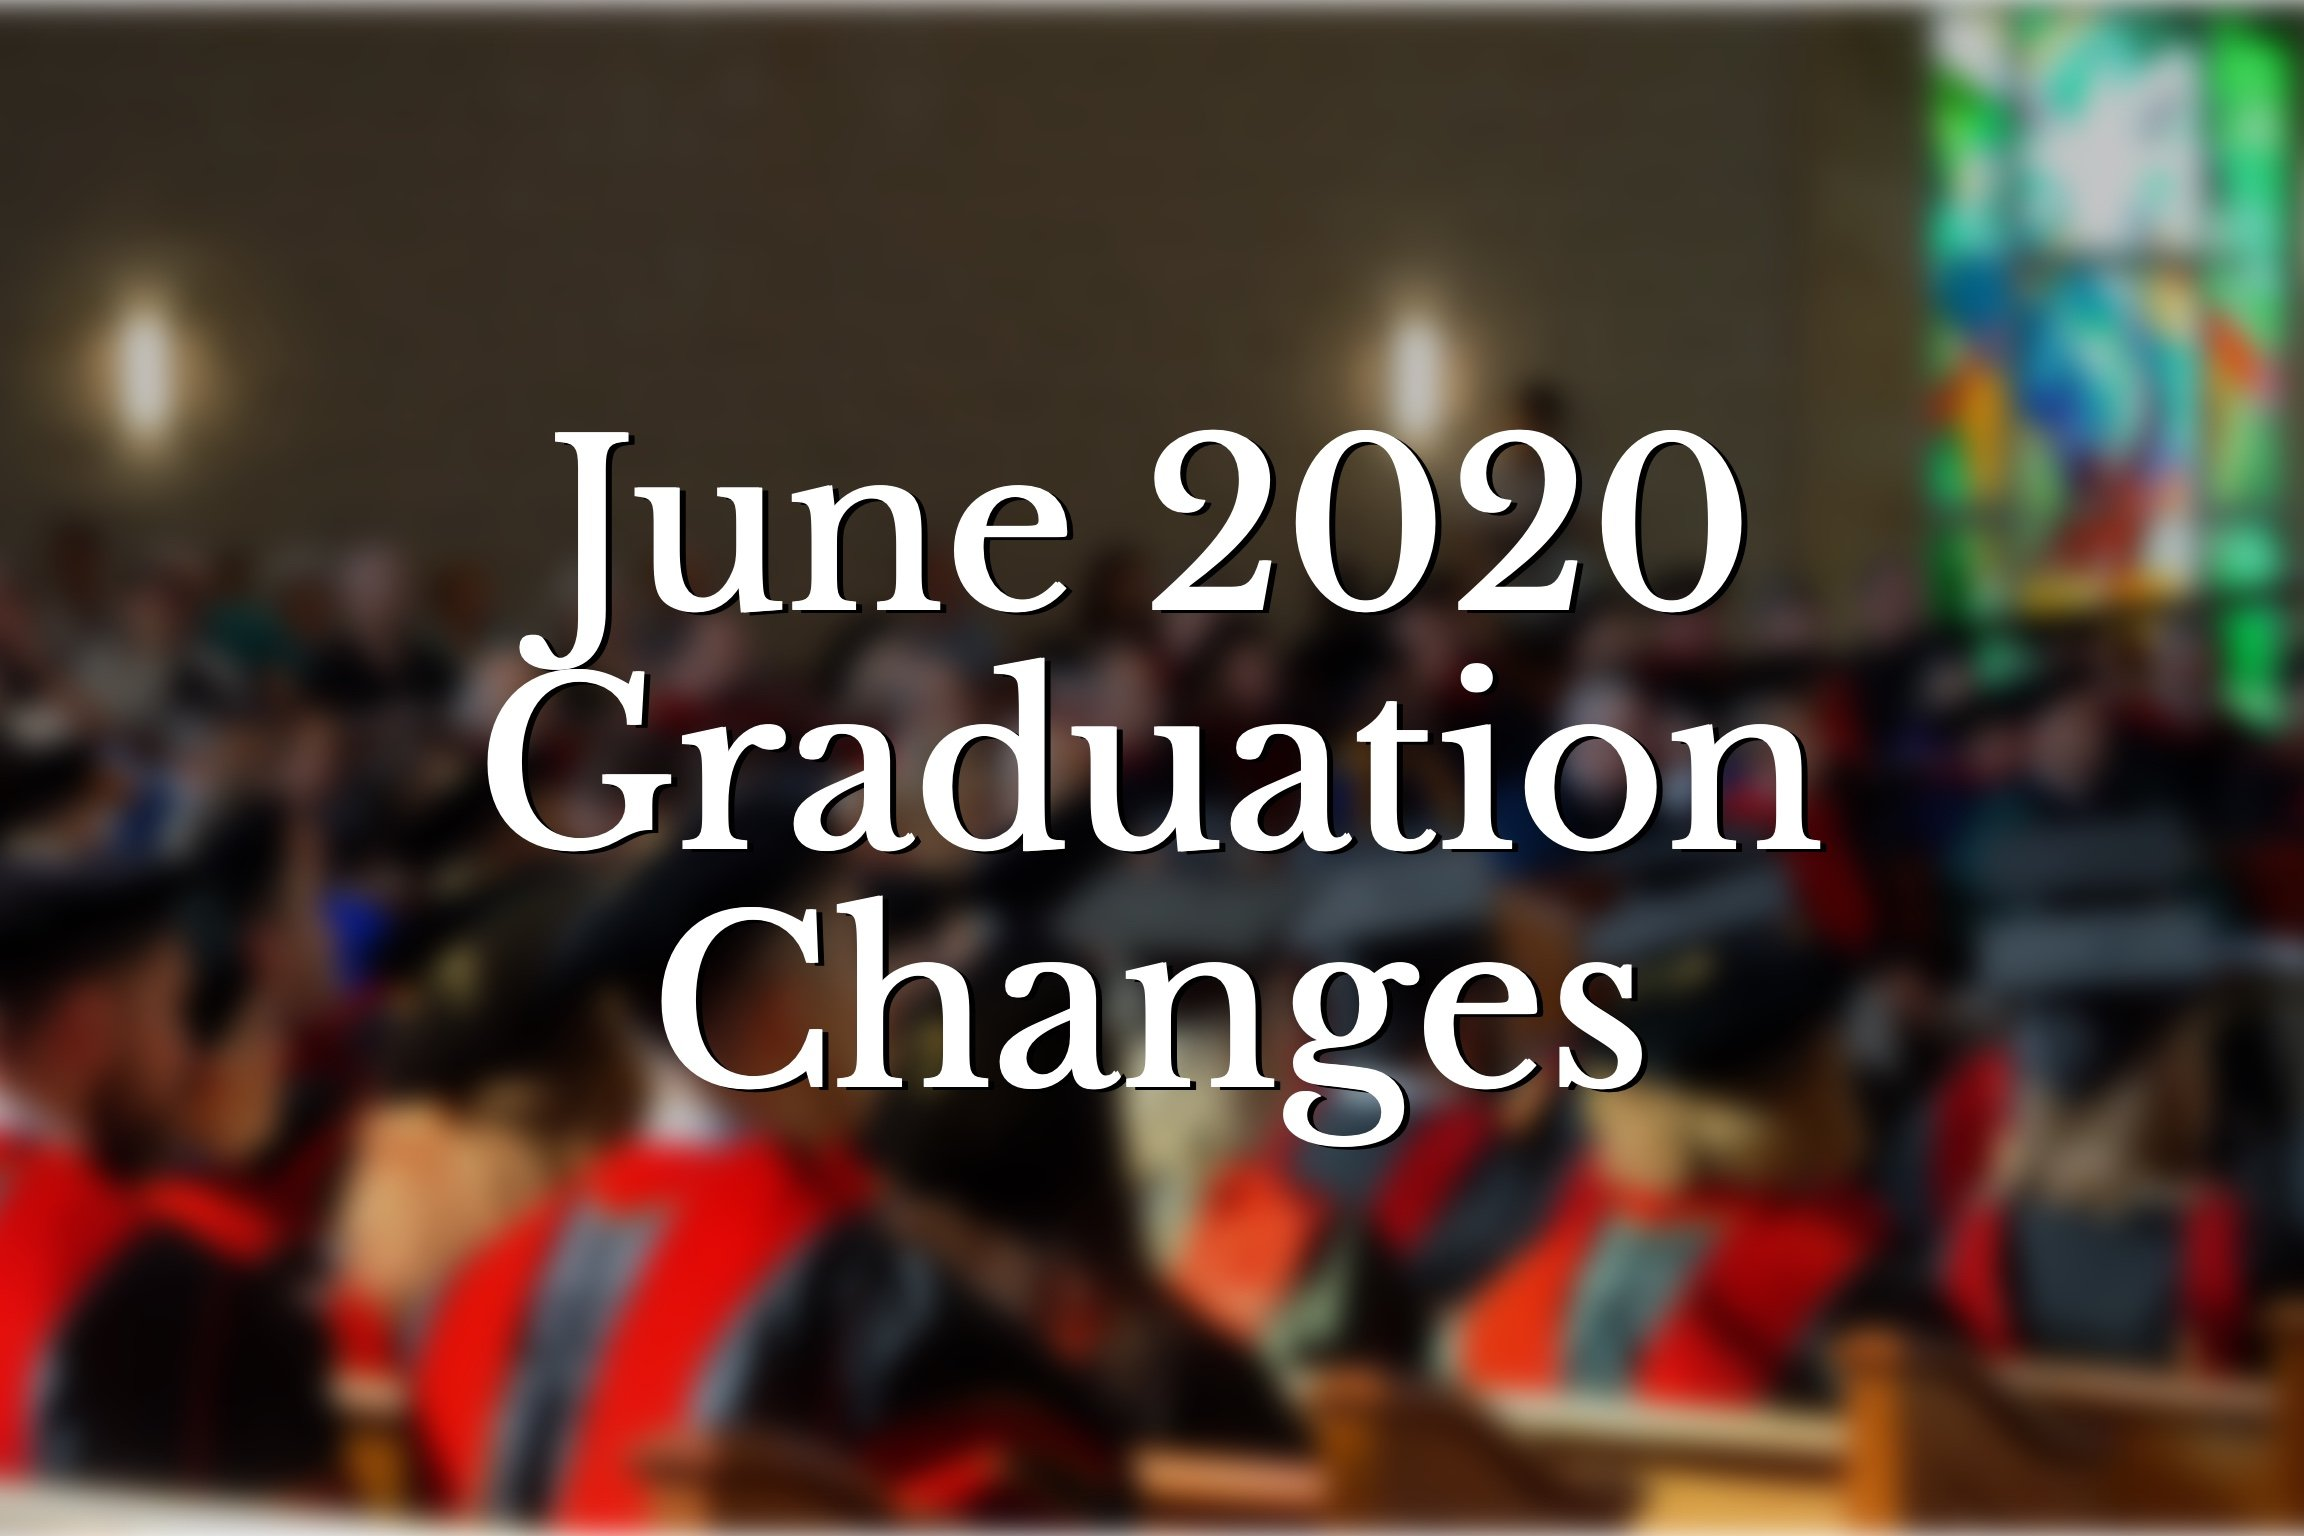 June 2020 Graduation Changes